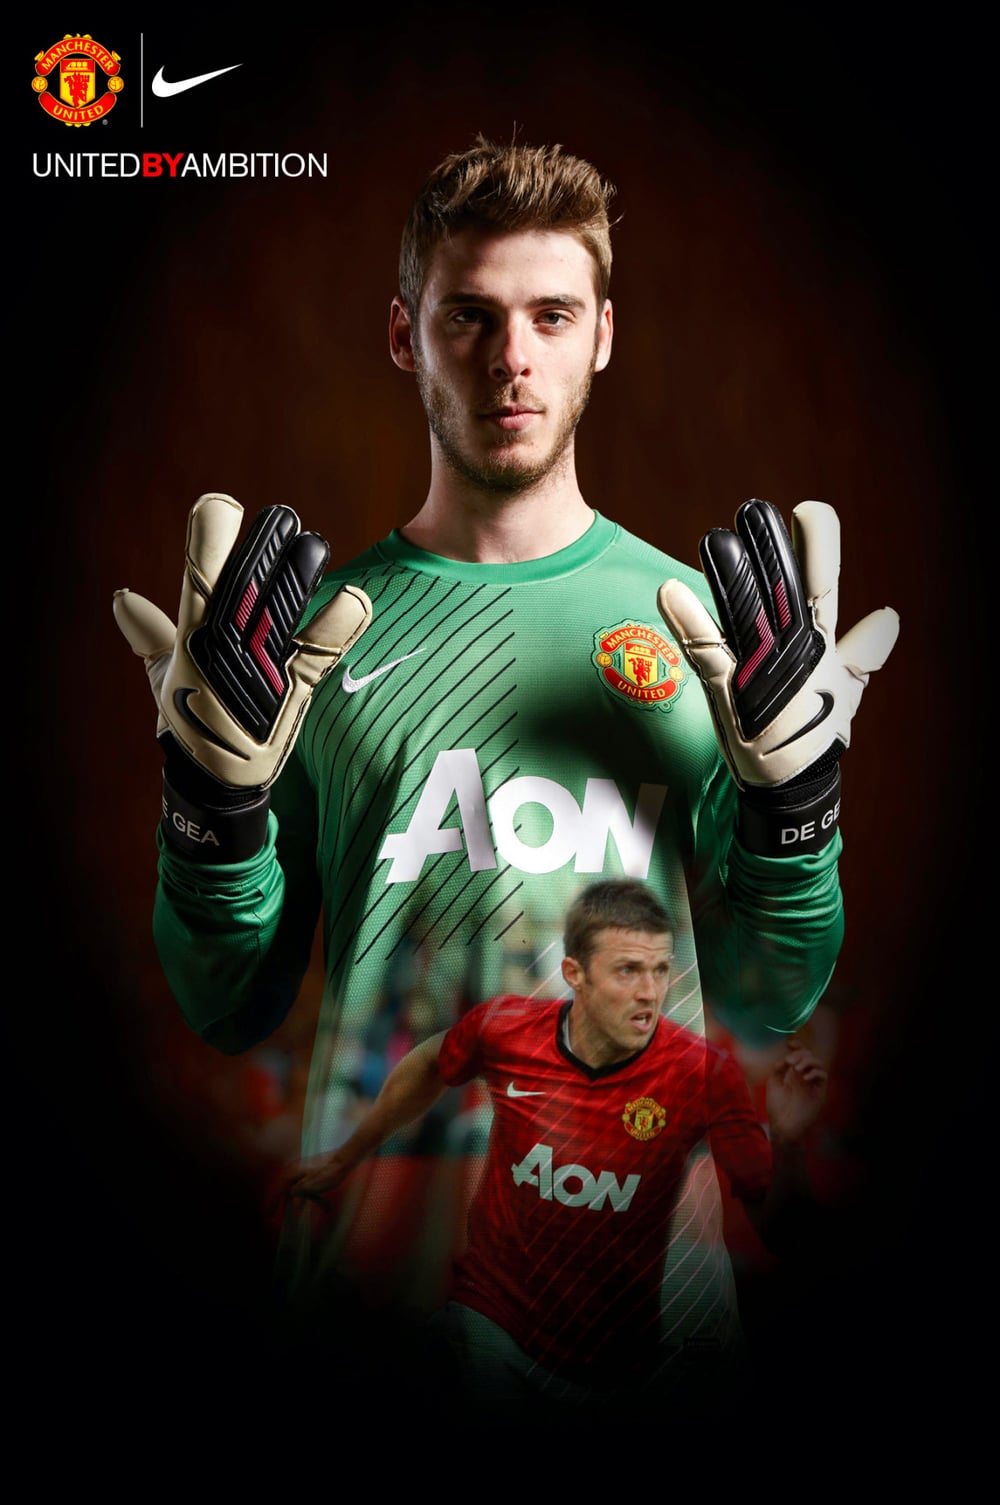 My New Utd shirt campaign shot last month with David de Gea